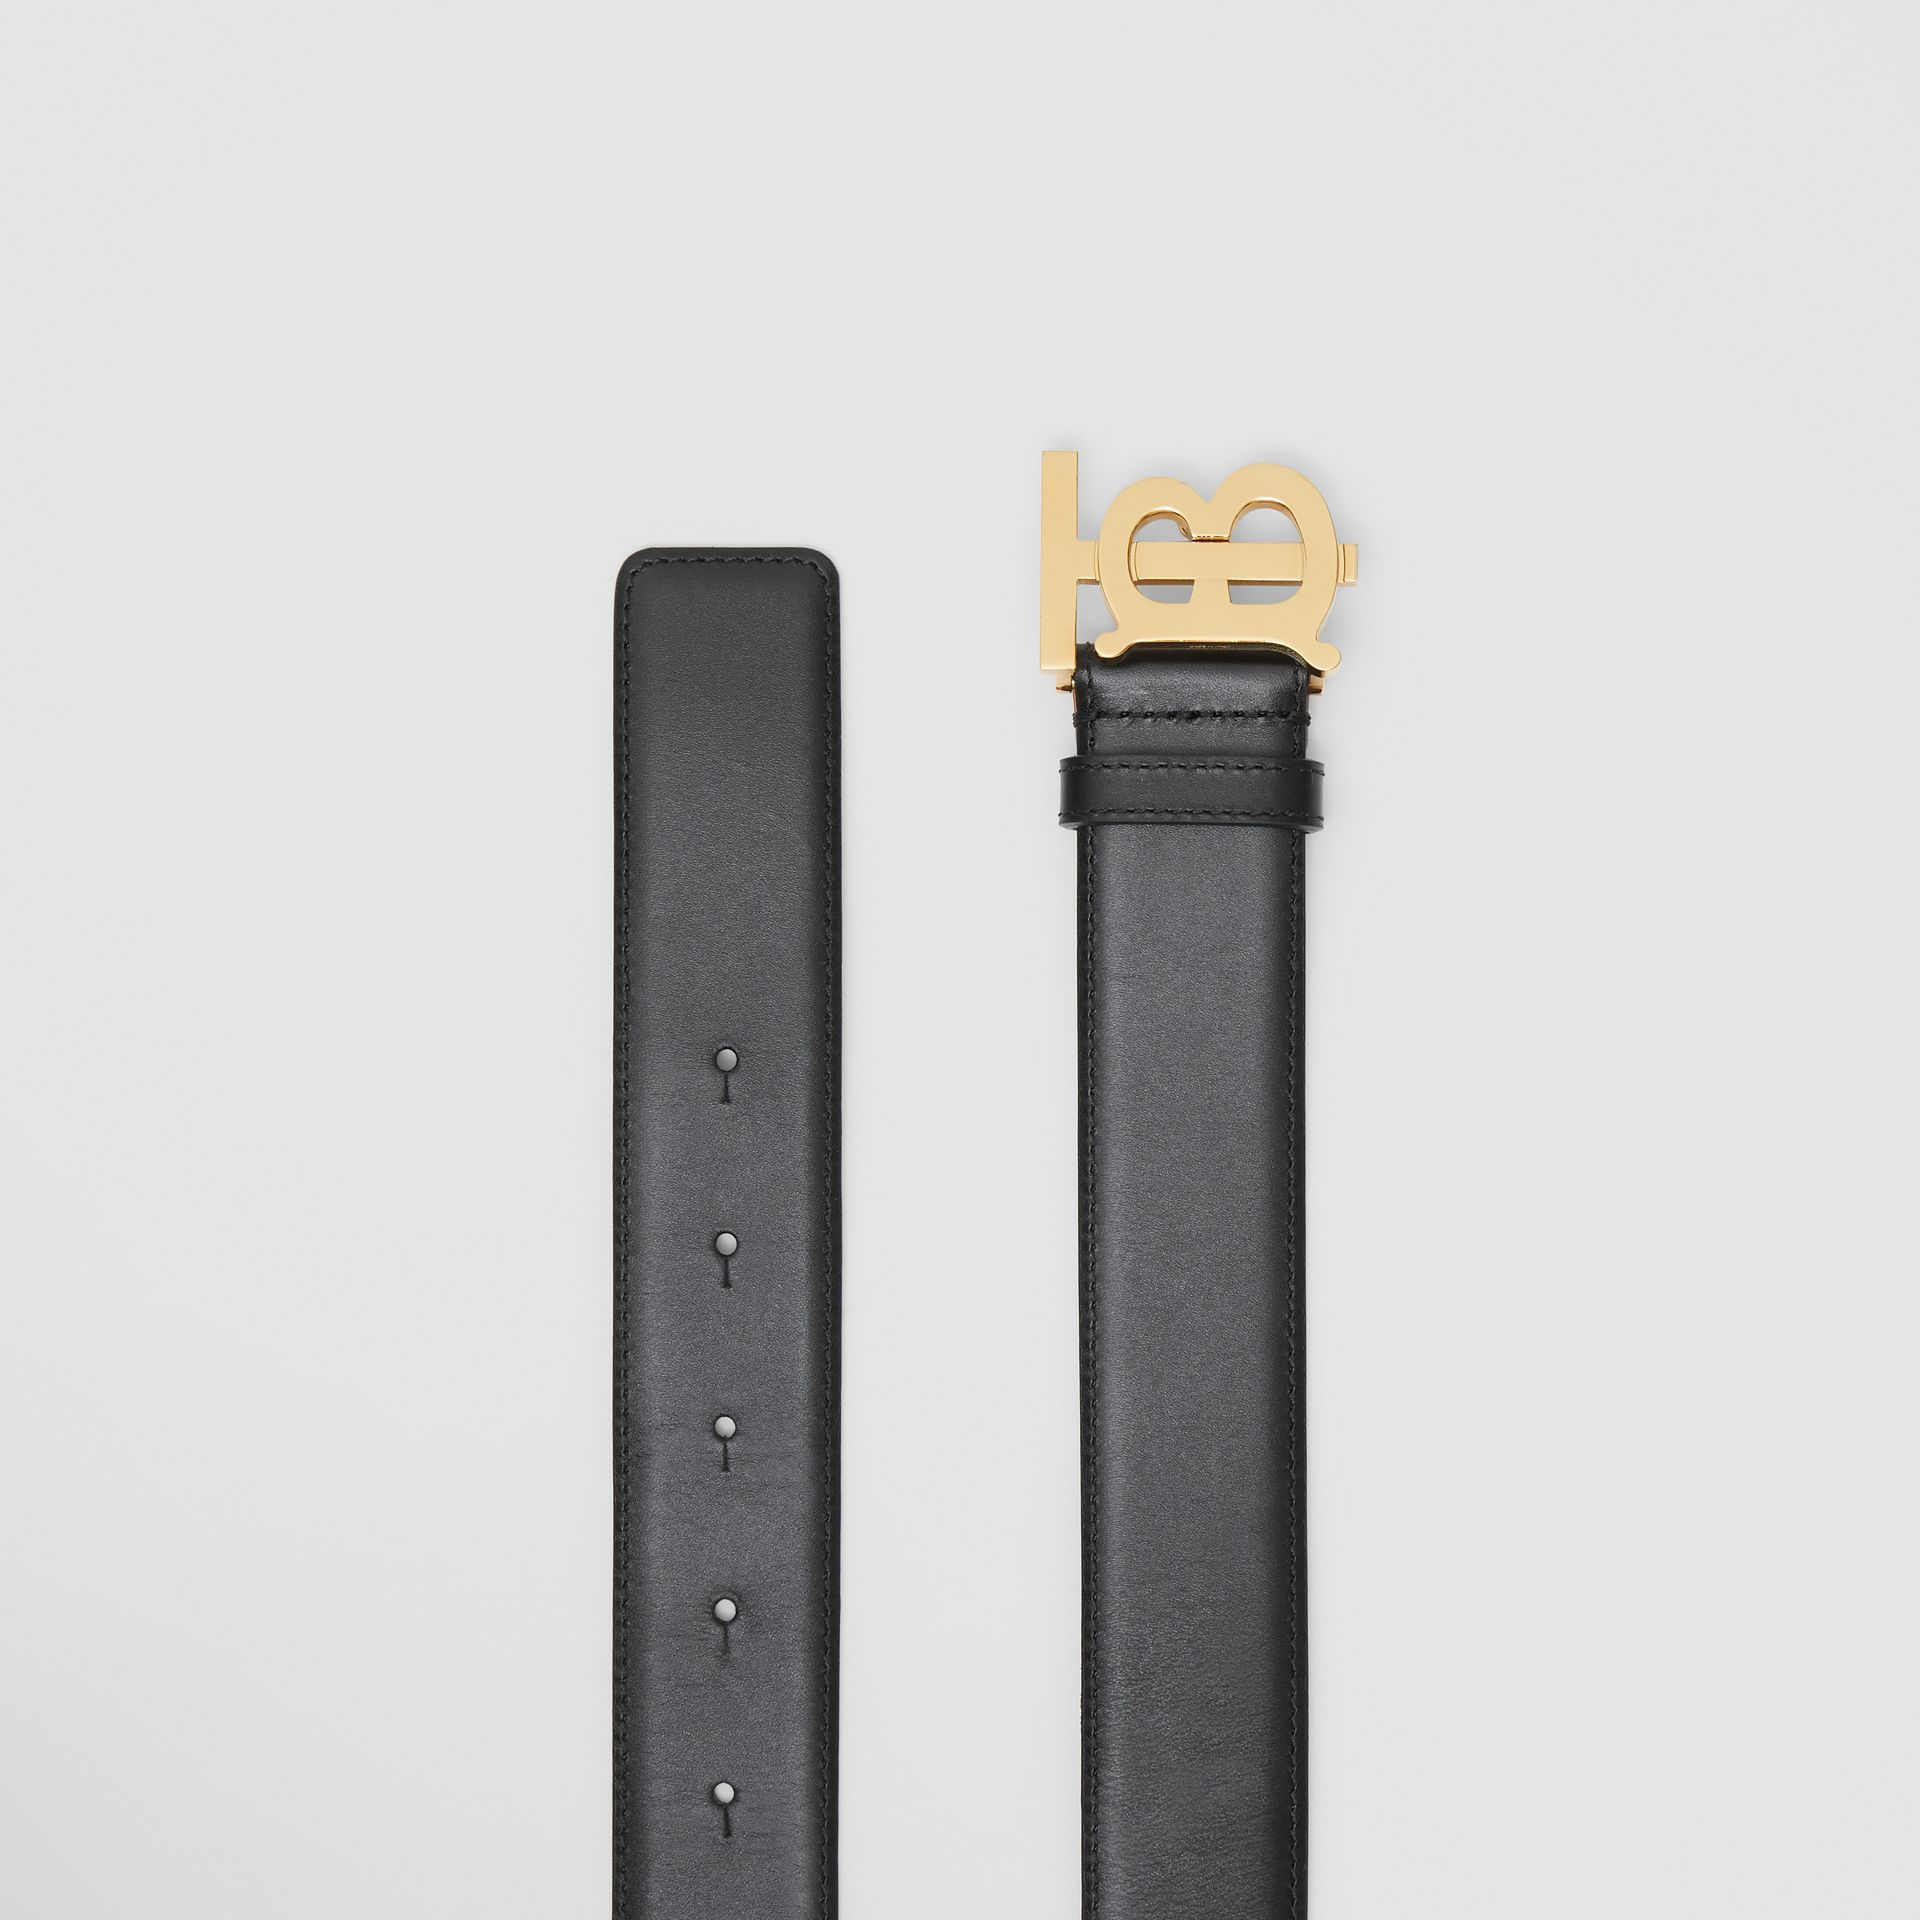 Monogram Motif Leather Belt in Black - Women | Burberry Hong Kong - gallery image 5